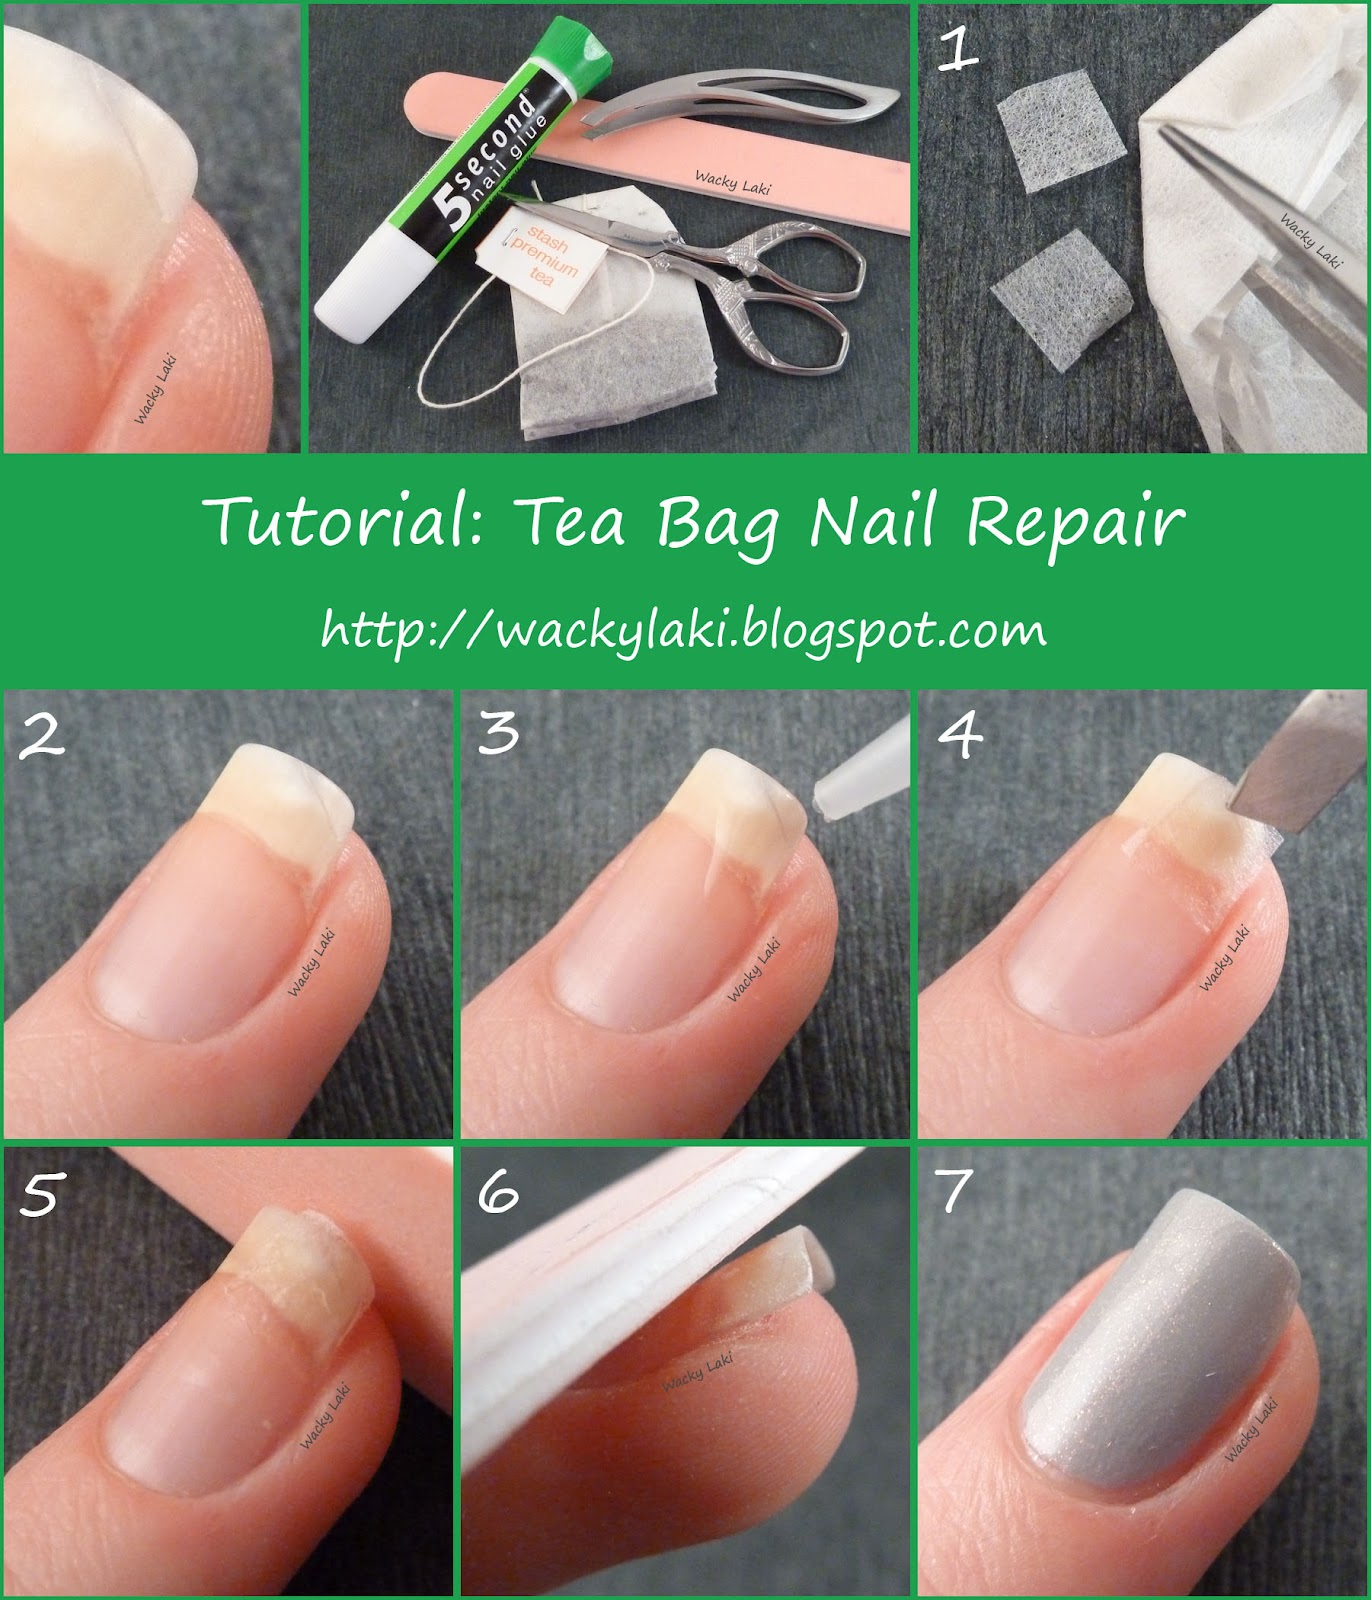 Wacky laki tutorial tuesday tea bag nail repair for How to fix a broken nail with a tea bag